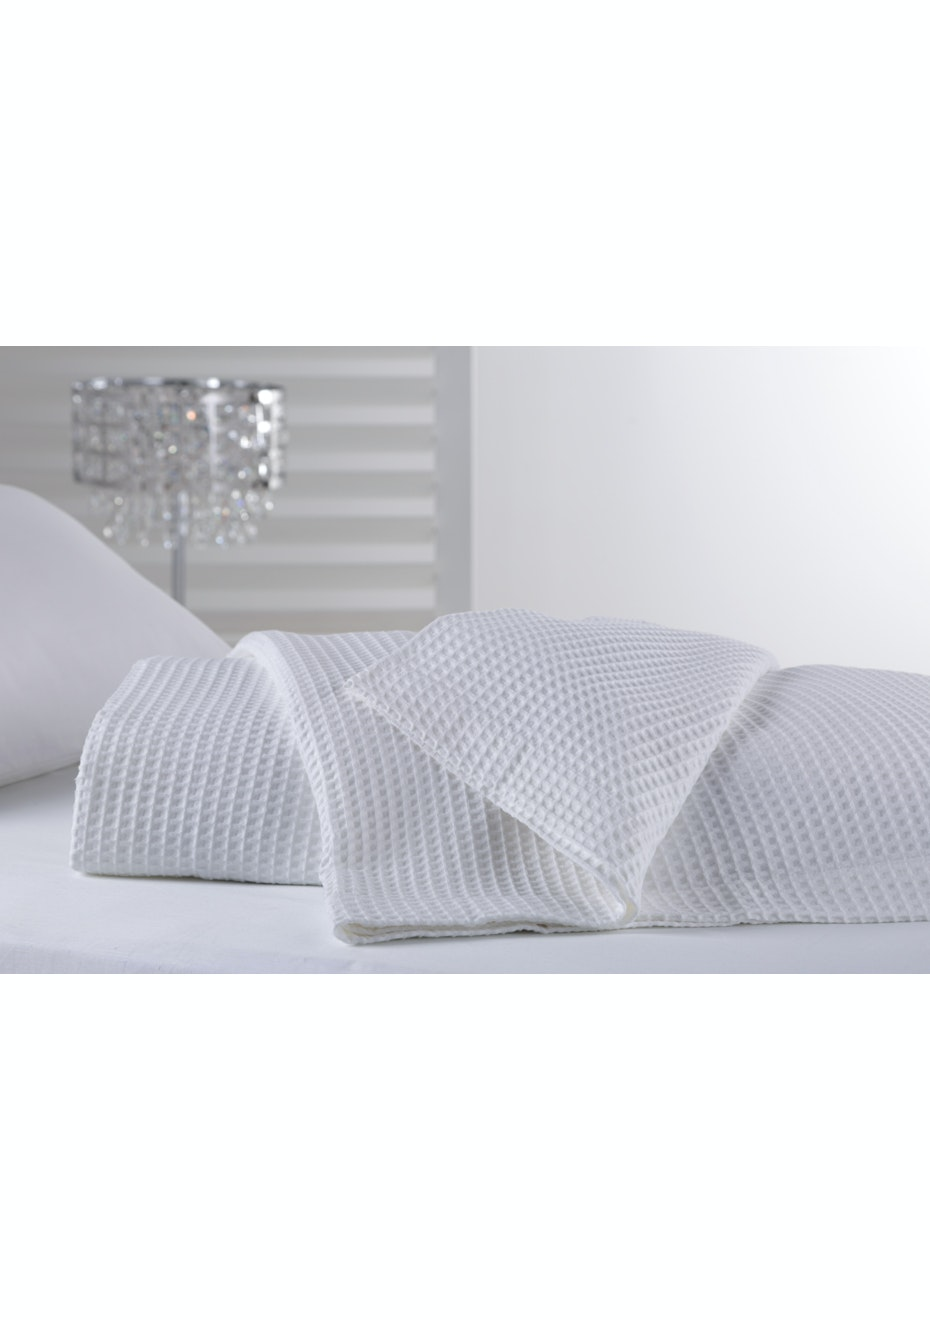 Regatta Cotton Blanket - White - King/Super King Bed